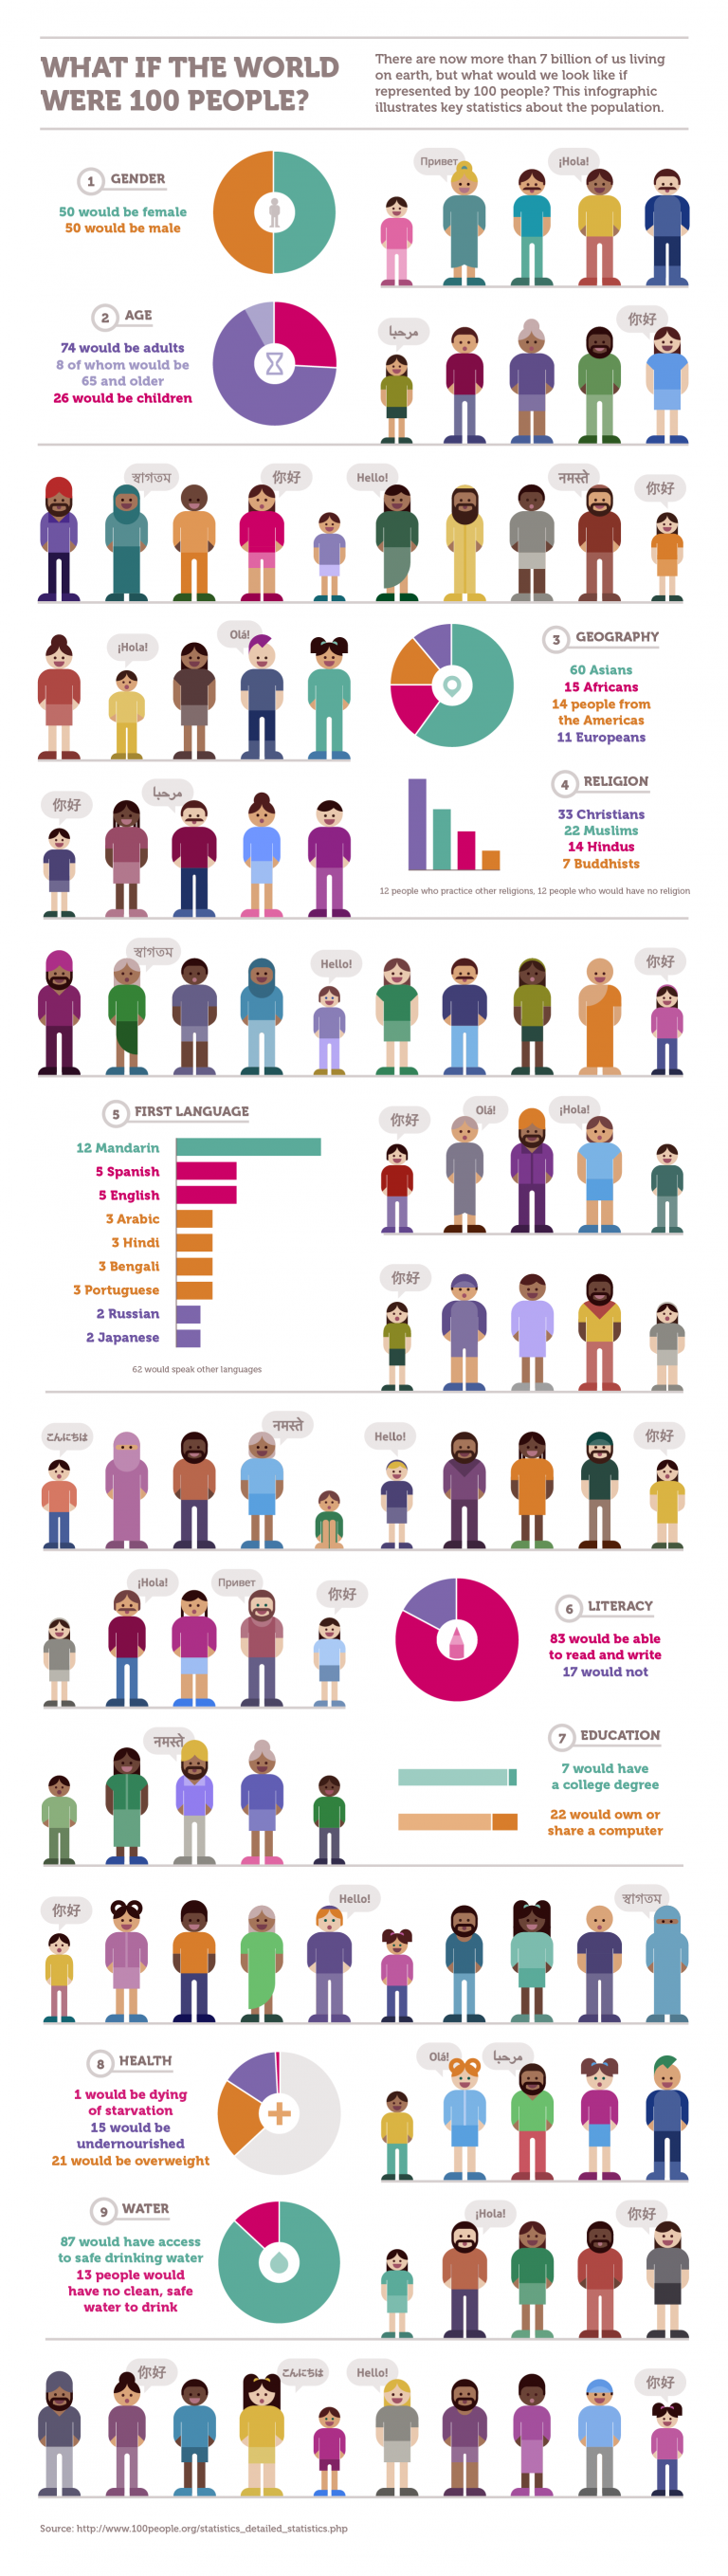 100_people_info_3_infographic copy